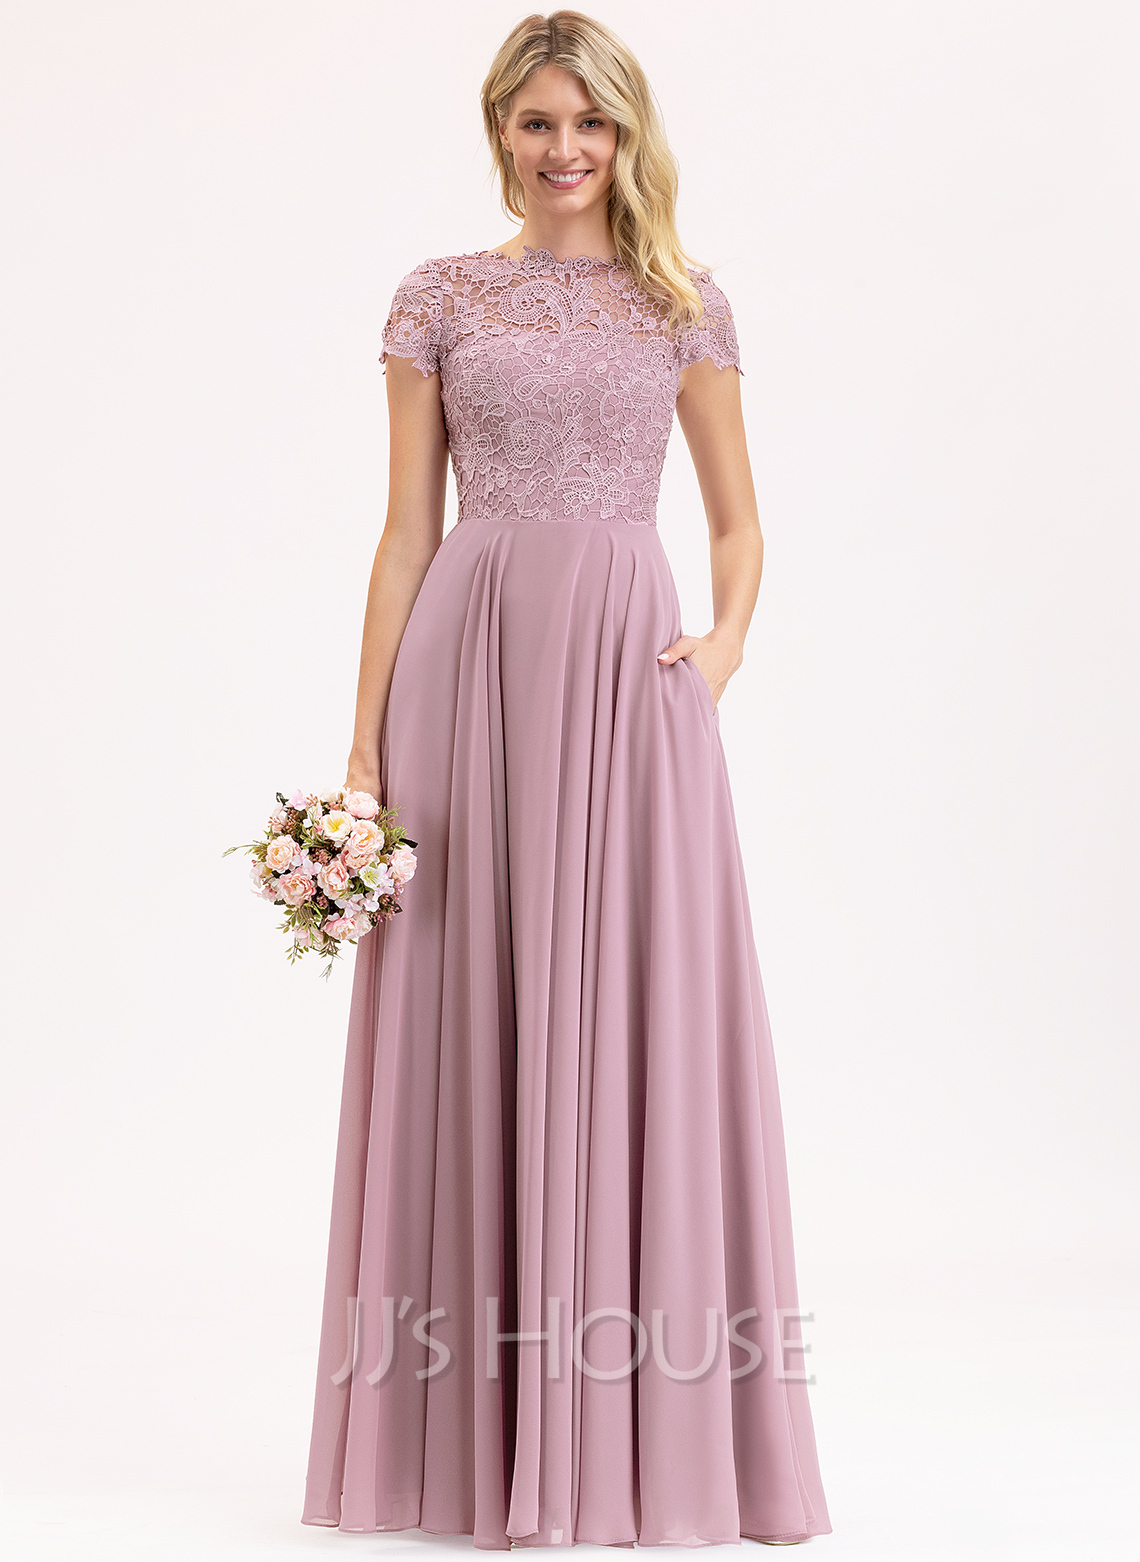 Scoop Neck Floor-Length Chiffon Lace Evening Dress With Pockets